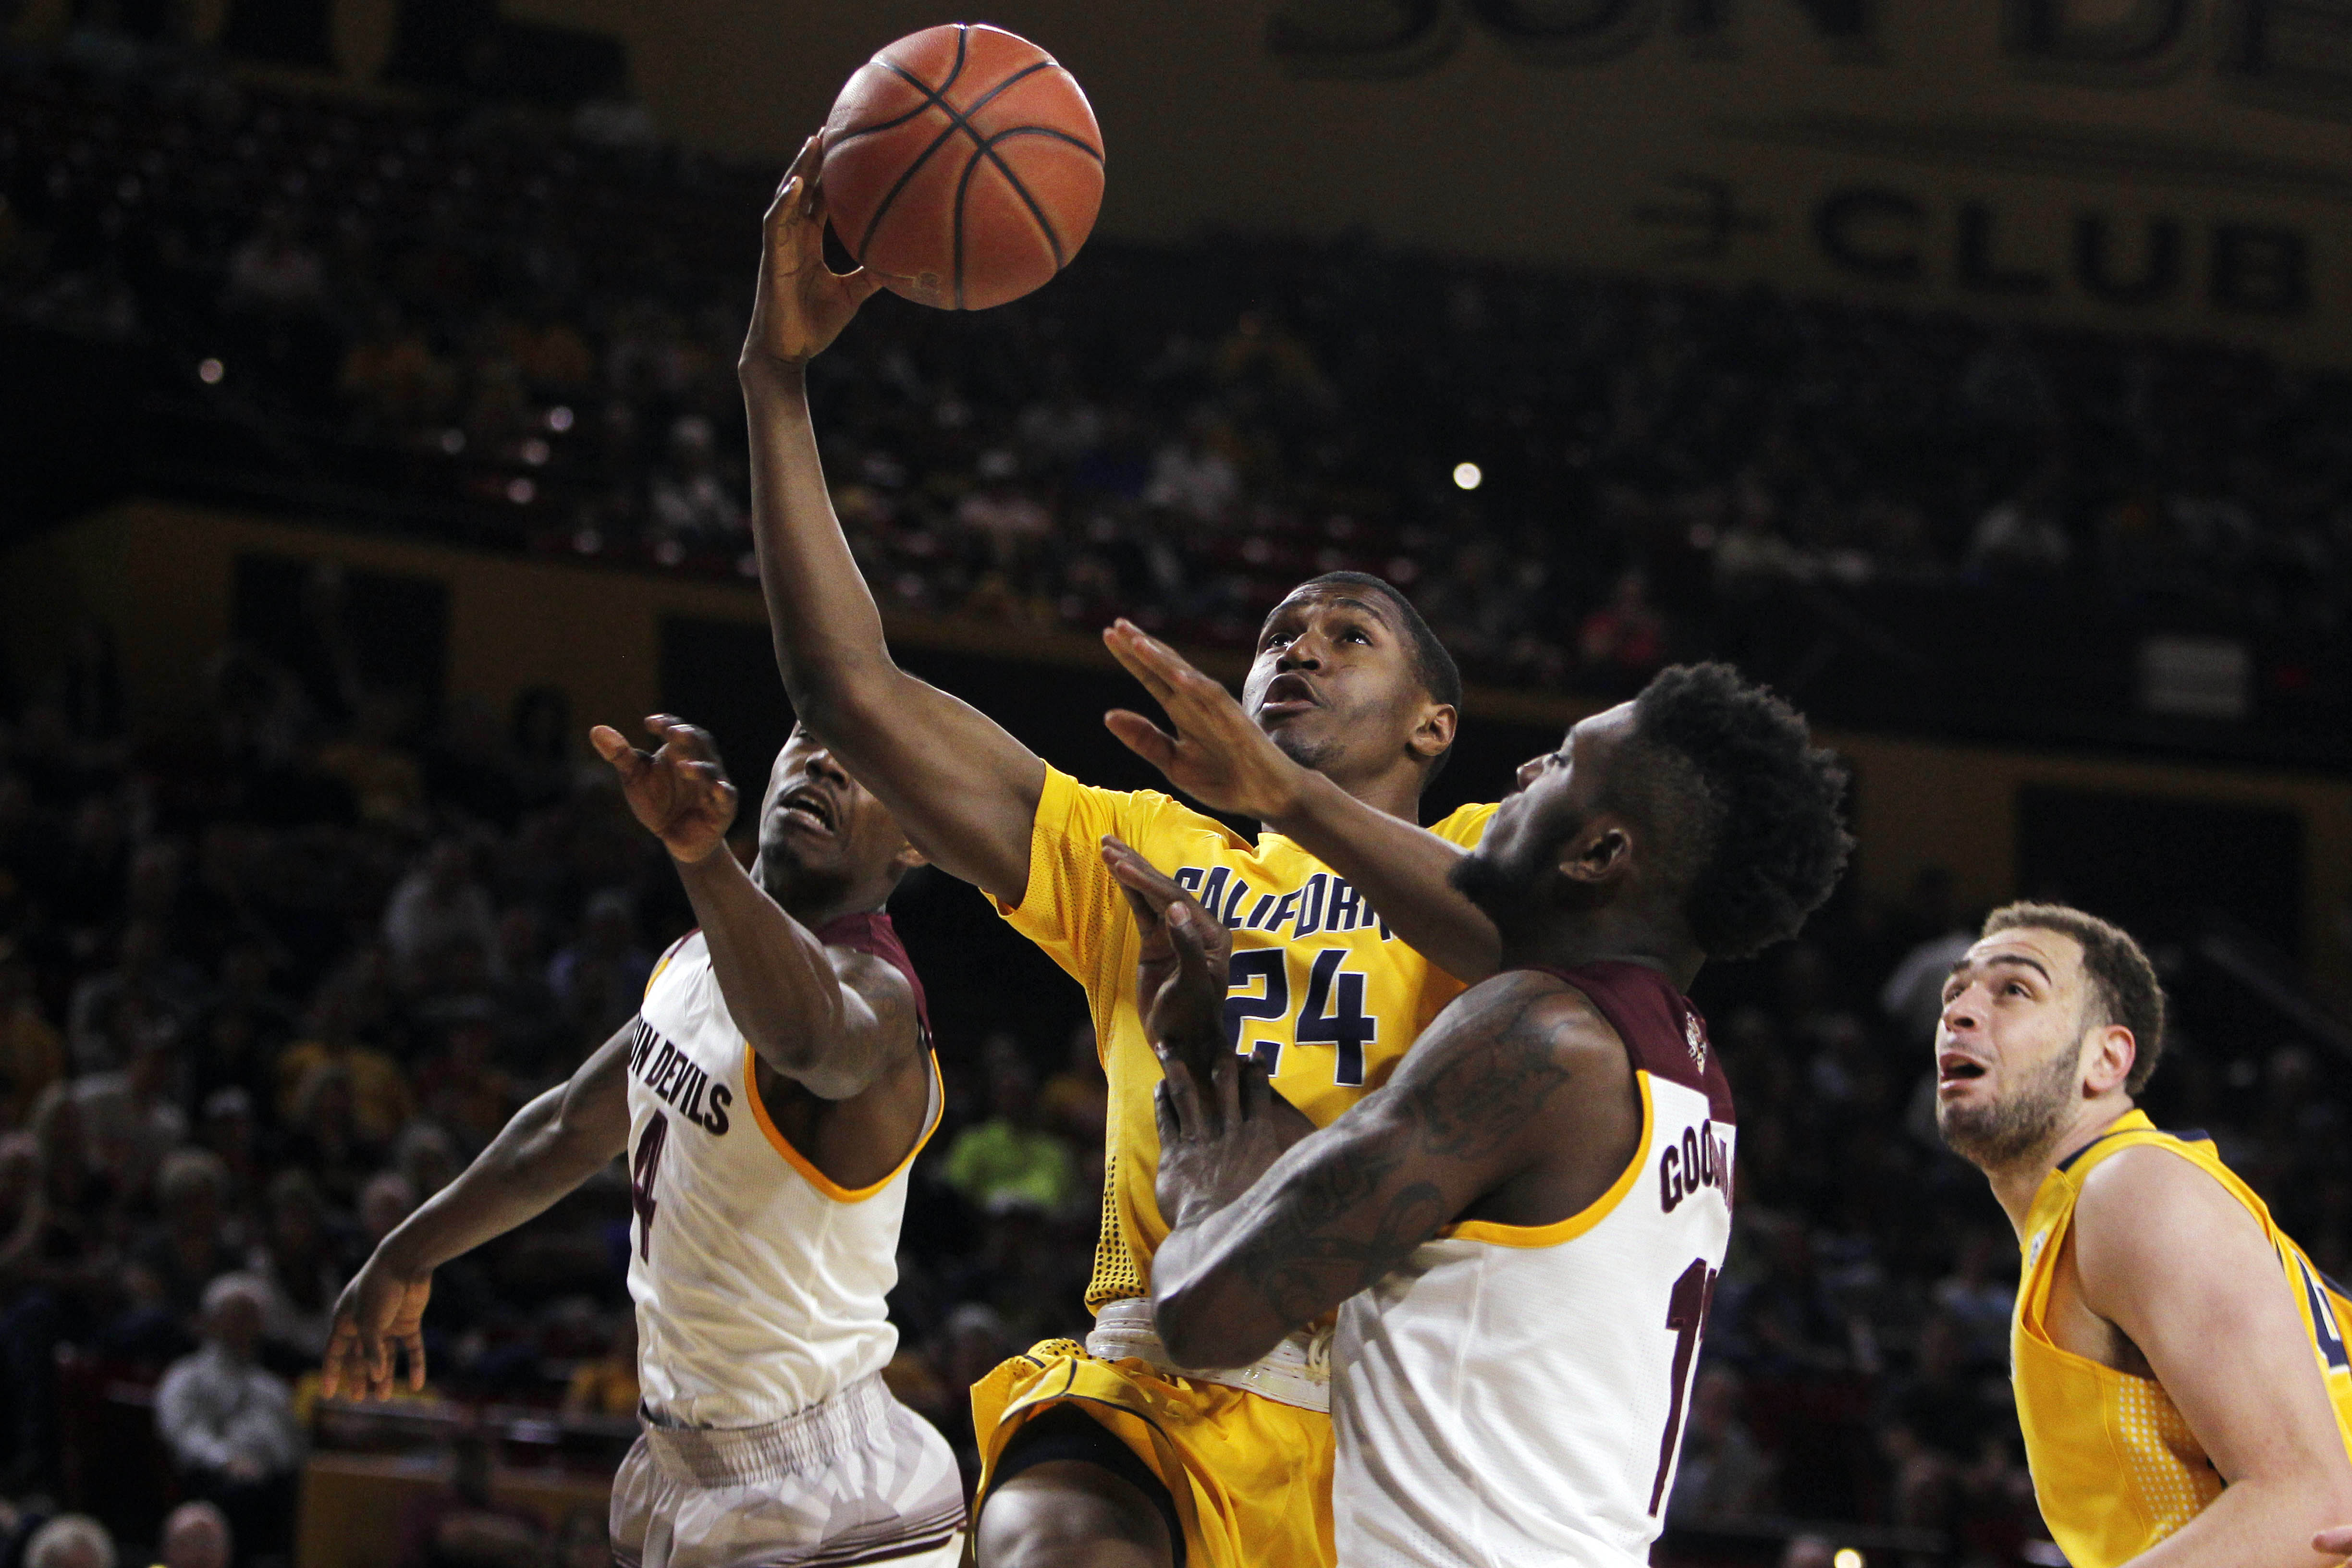 California guard Jordan Mathews (24) goes up to the basket against Arizona State guard Gerry Blakes, left, and Savon Goodman during the first half of an NCAA college basketball game in Tempe, Ariz., Saturday, March 5, 2016. (AP Photo/Ricardo Arduengo)